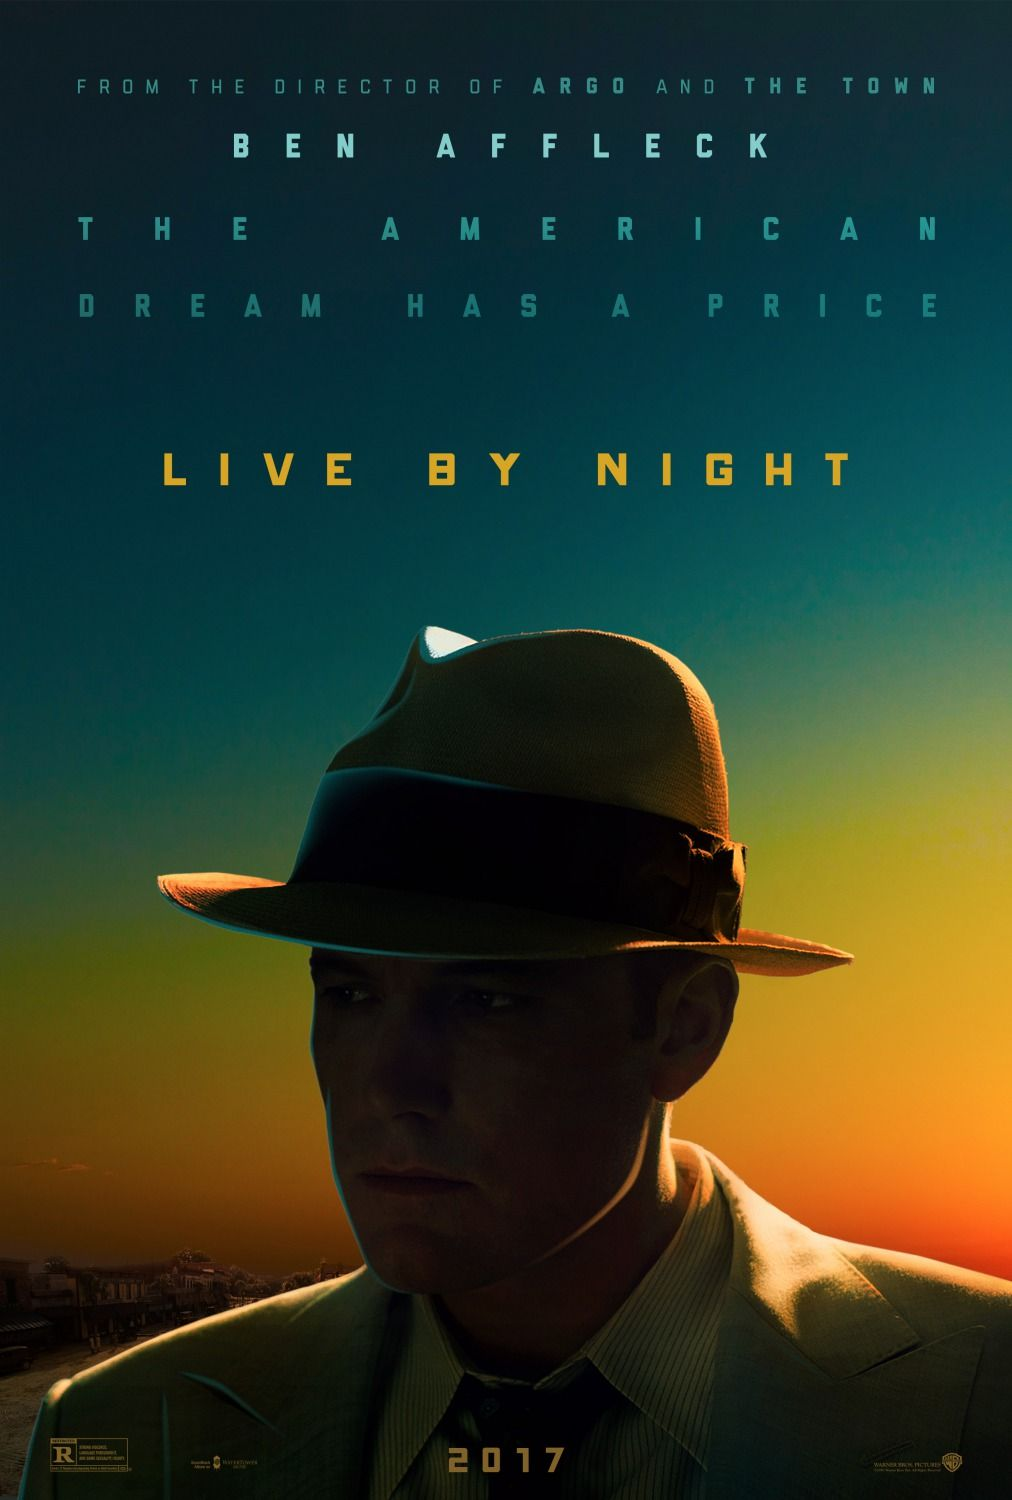 Live By Night December 25 2016 2017 Directed Screenplay By Ben